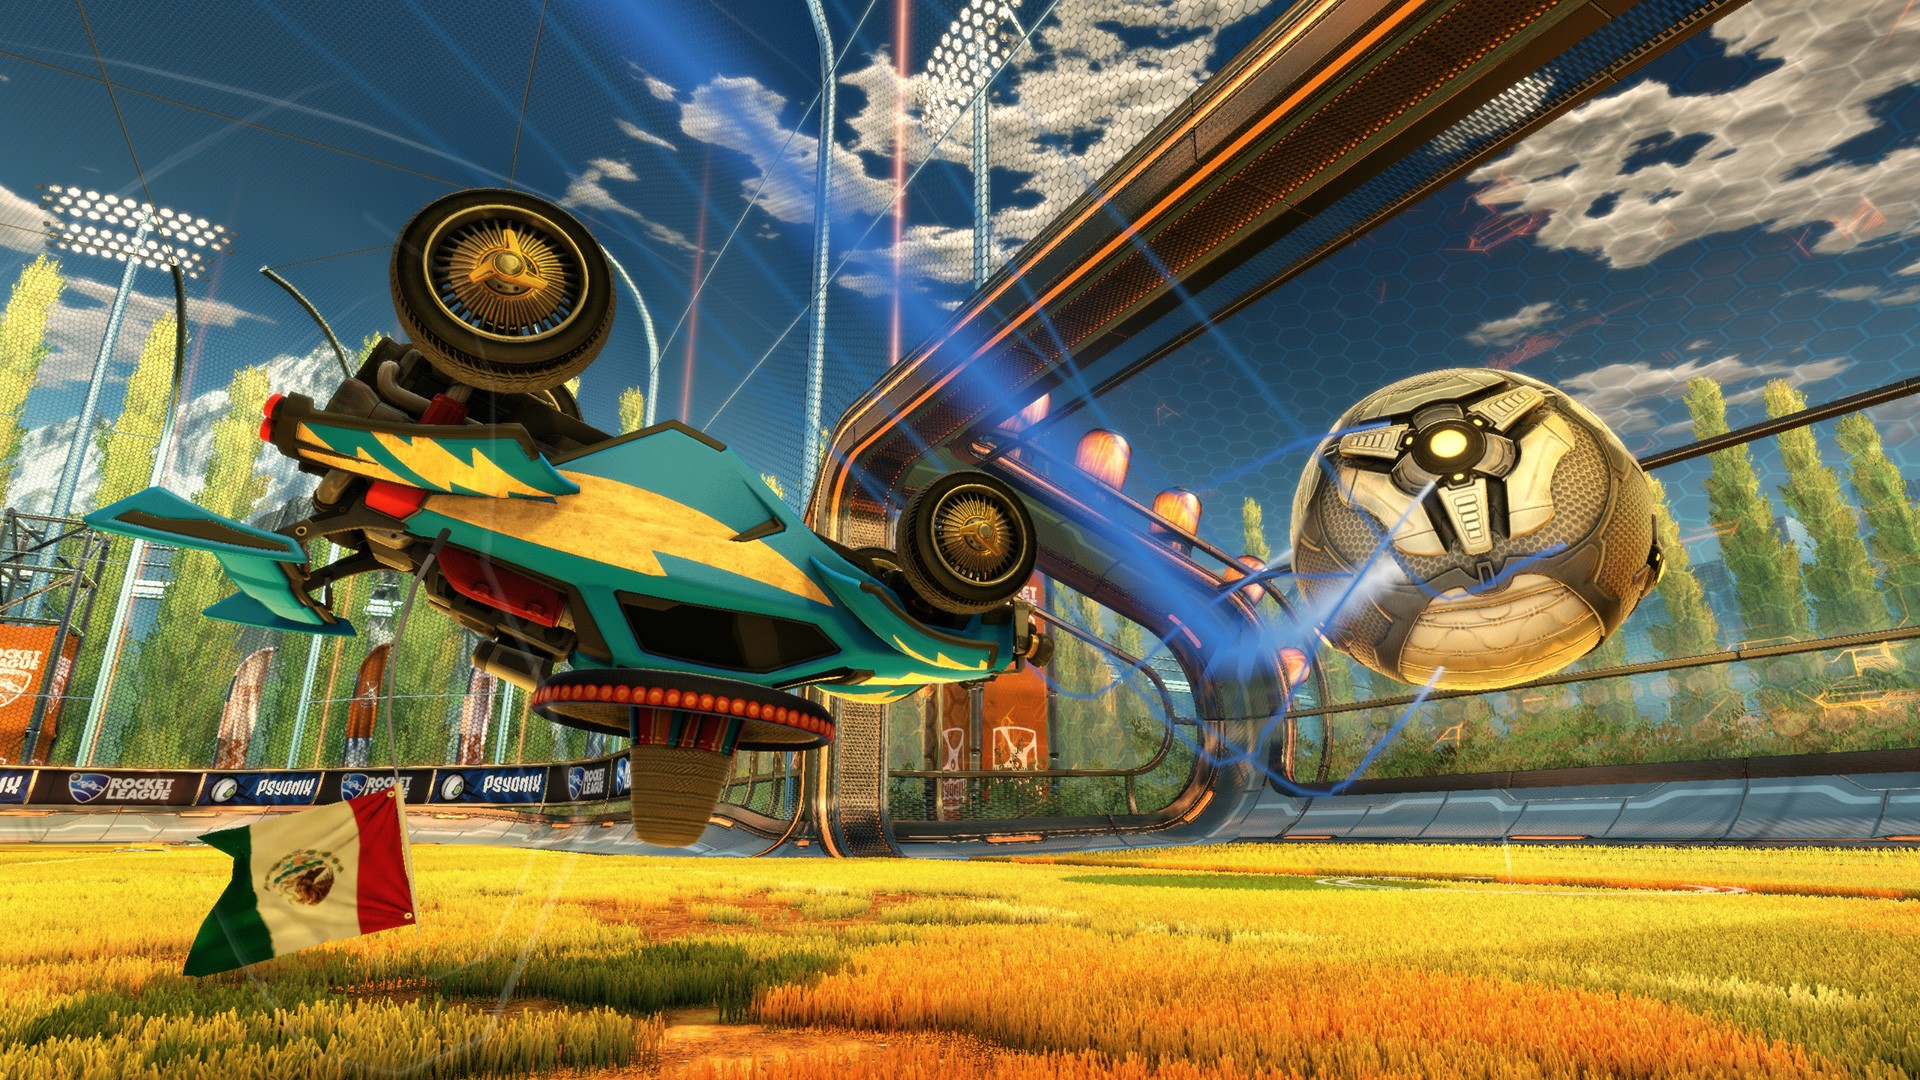 New Rocket League PS4 update enables 60 FPS on base model and the Pro